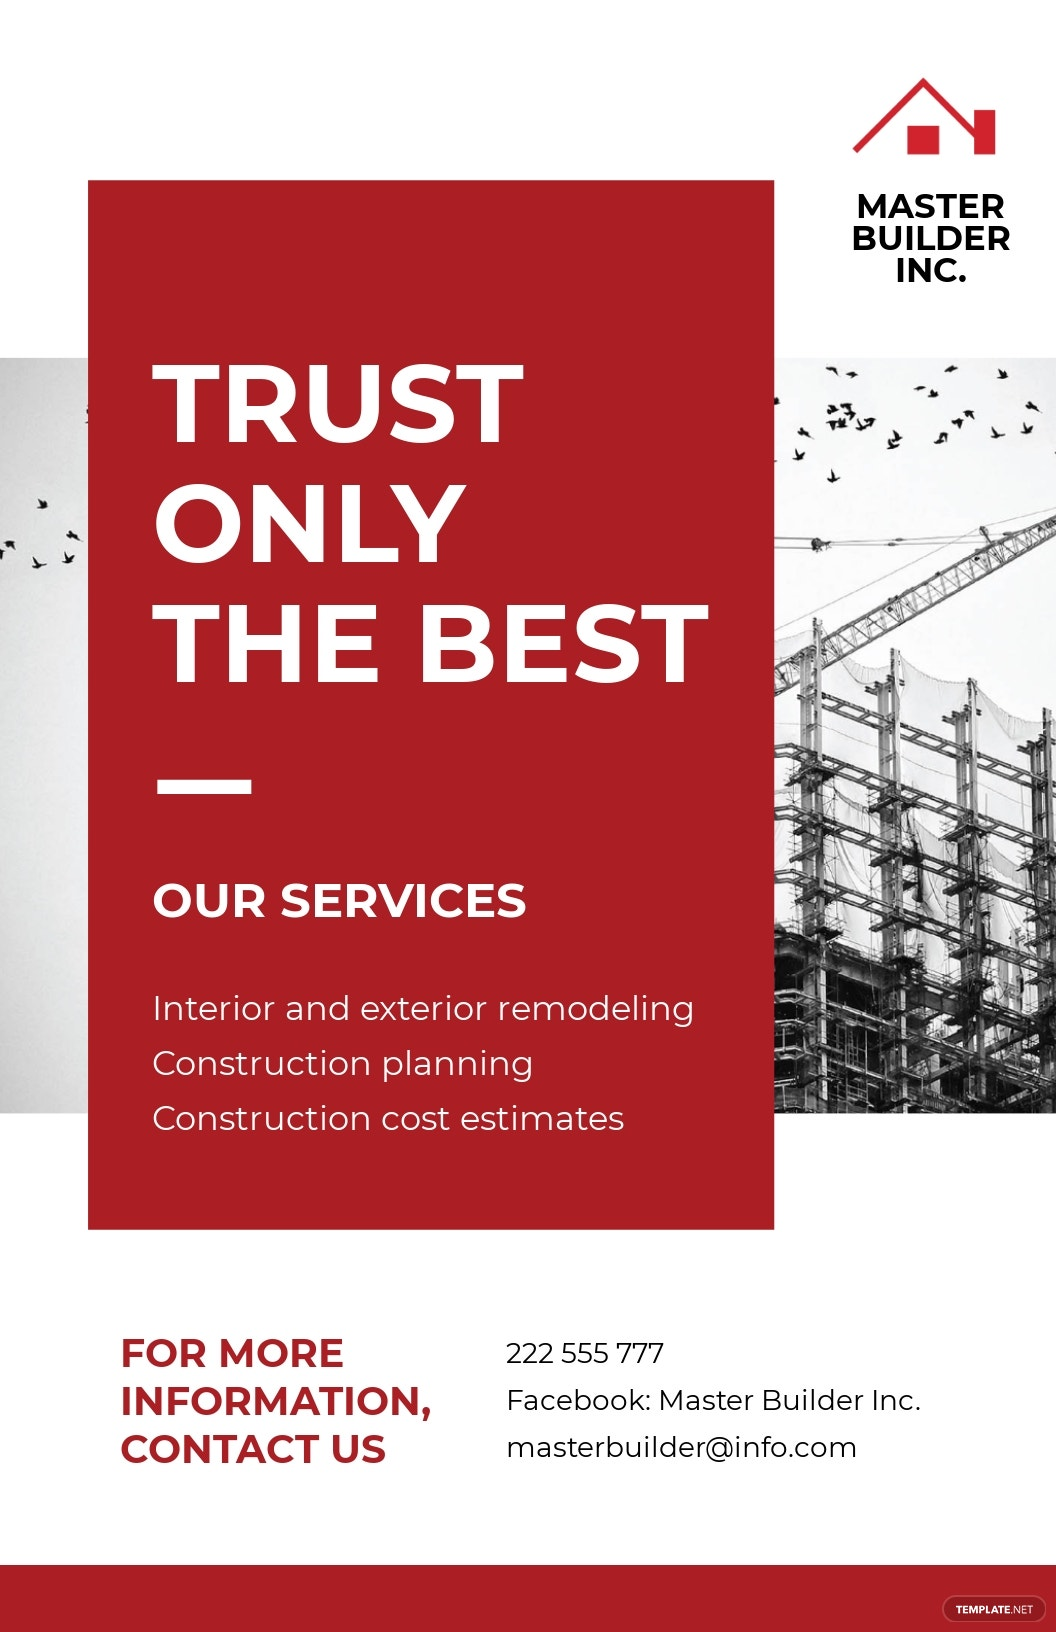 Construction Advertisement Poster Template [Free JPG] - Illustrator, InDesign, Word, Apple Pages, PSD